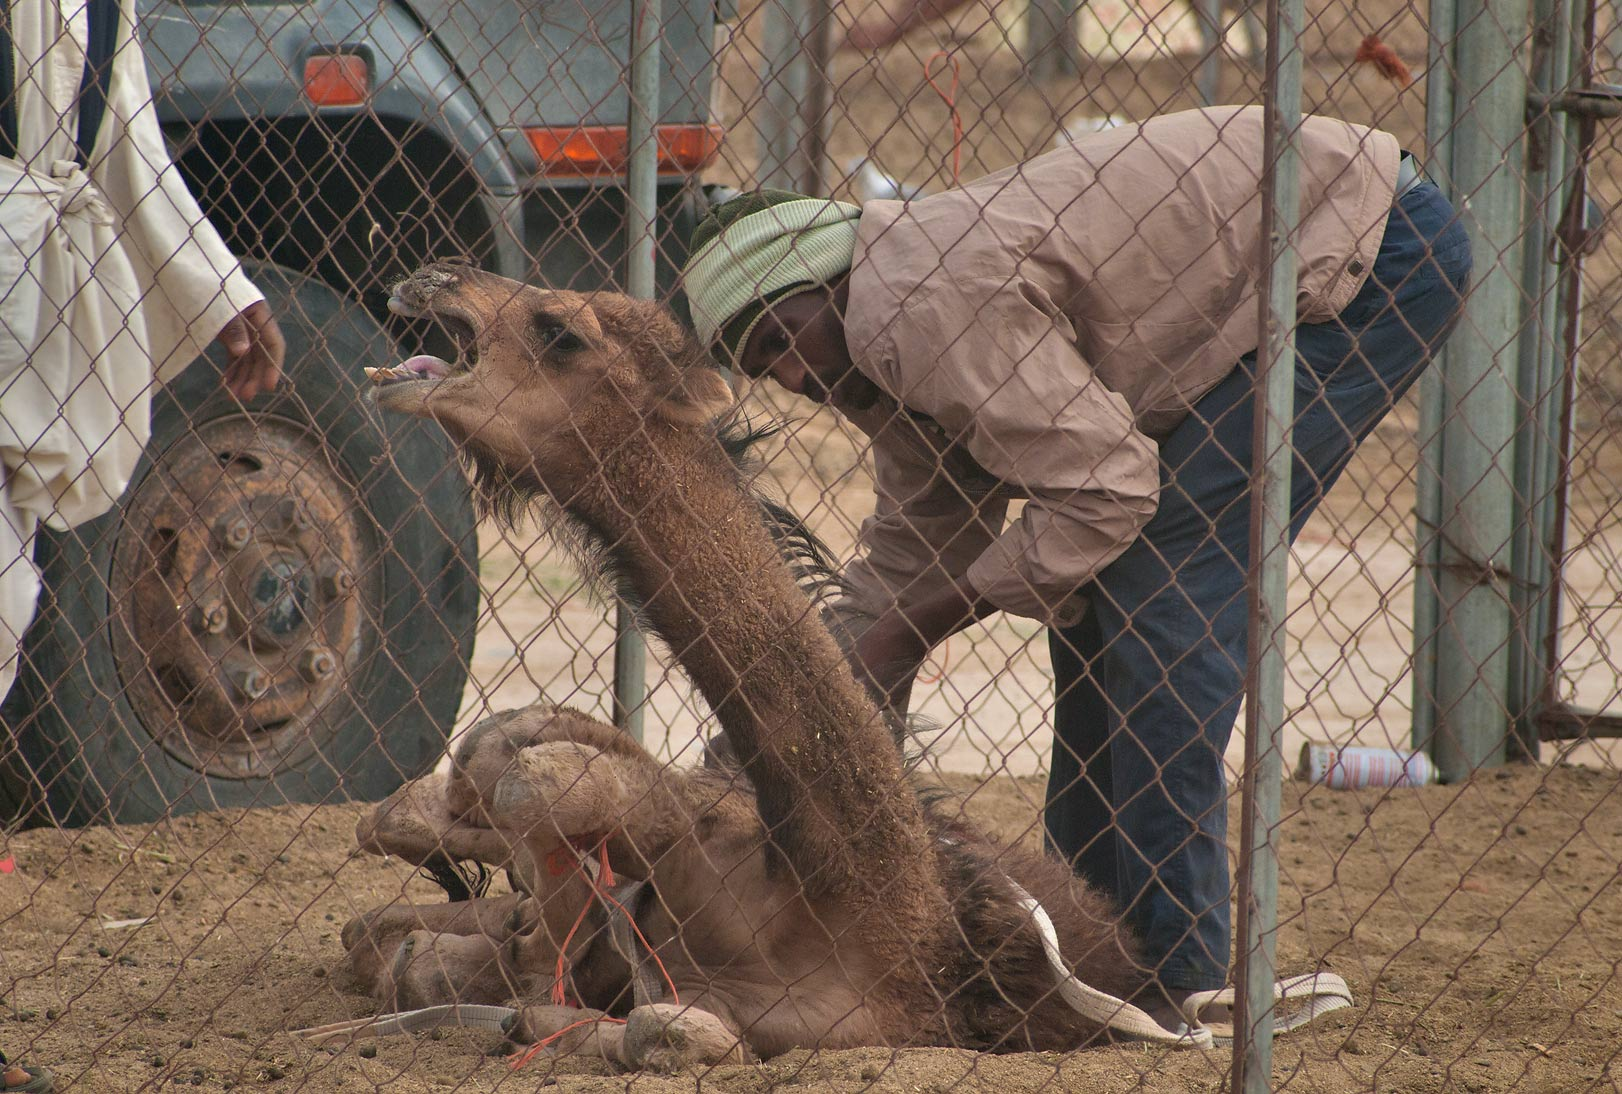 Groaning and protesting camel in Camel Market, wholesale markets area. Doha, Qatar